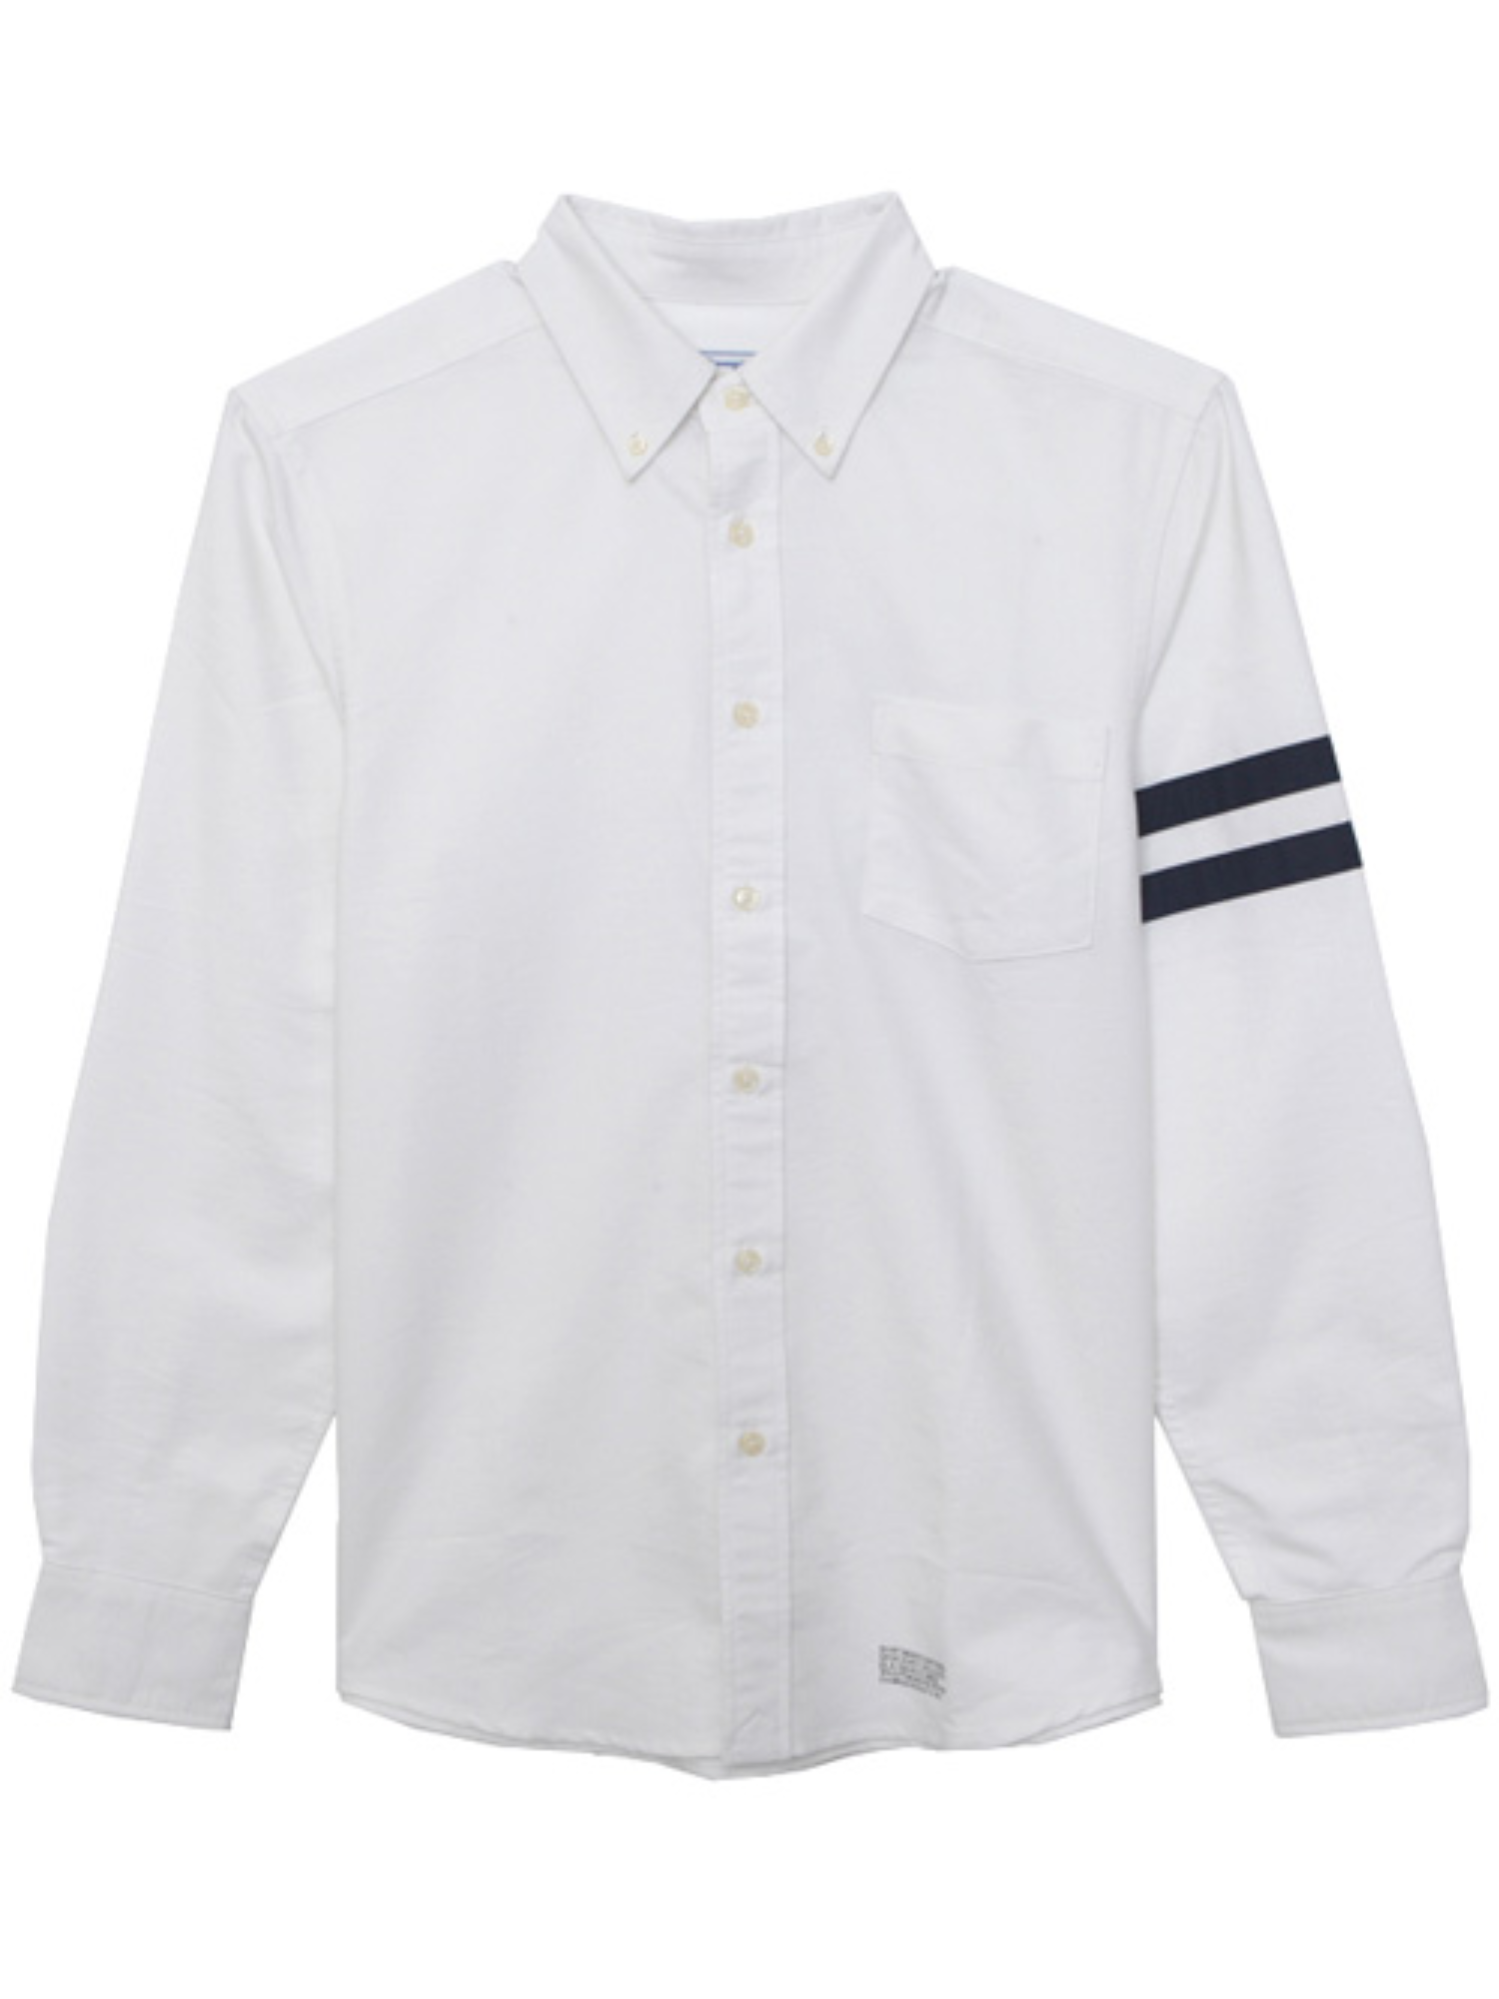 "CHAMPION Campus Oxford Shirts Cool Max C3-F405 ""White(010)"""